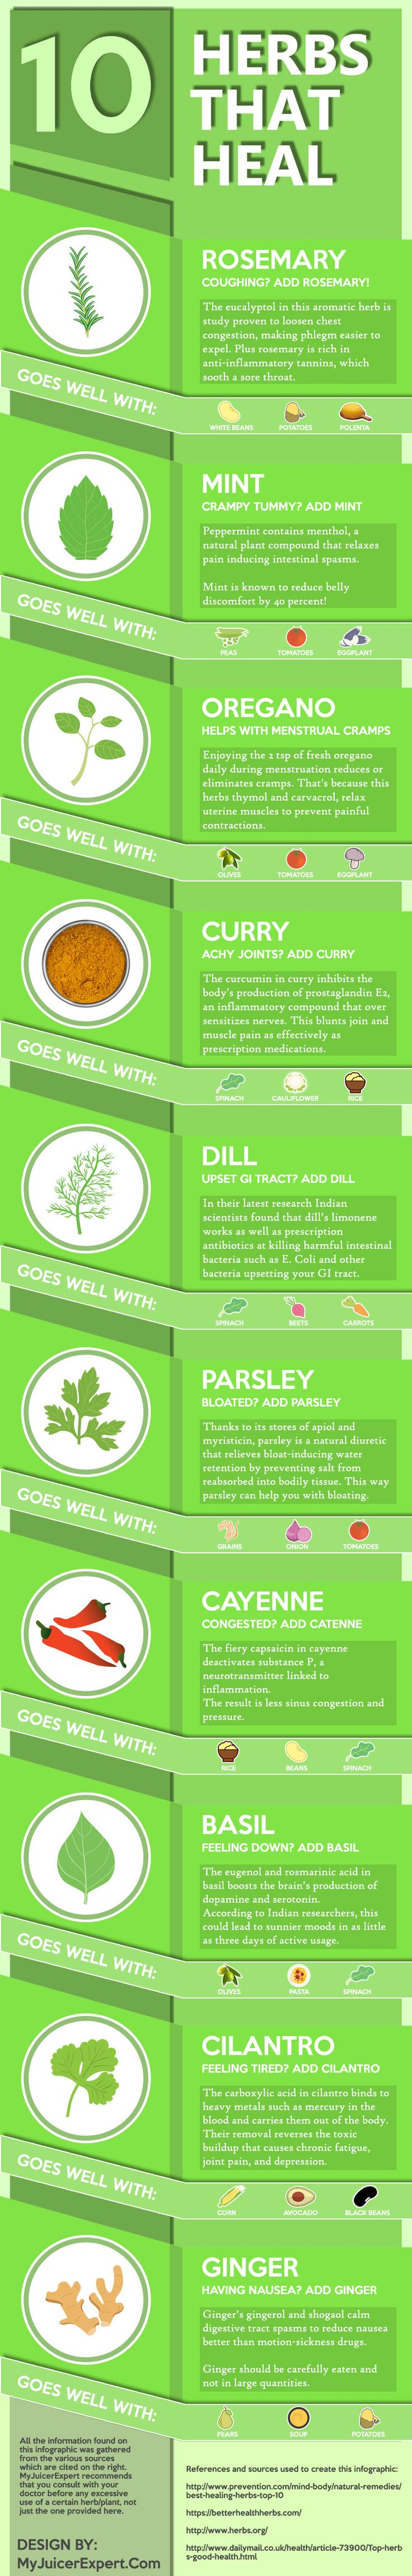 Meet The 10 Herbs That Will Keep You Healthy!